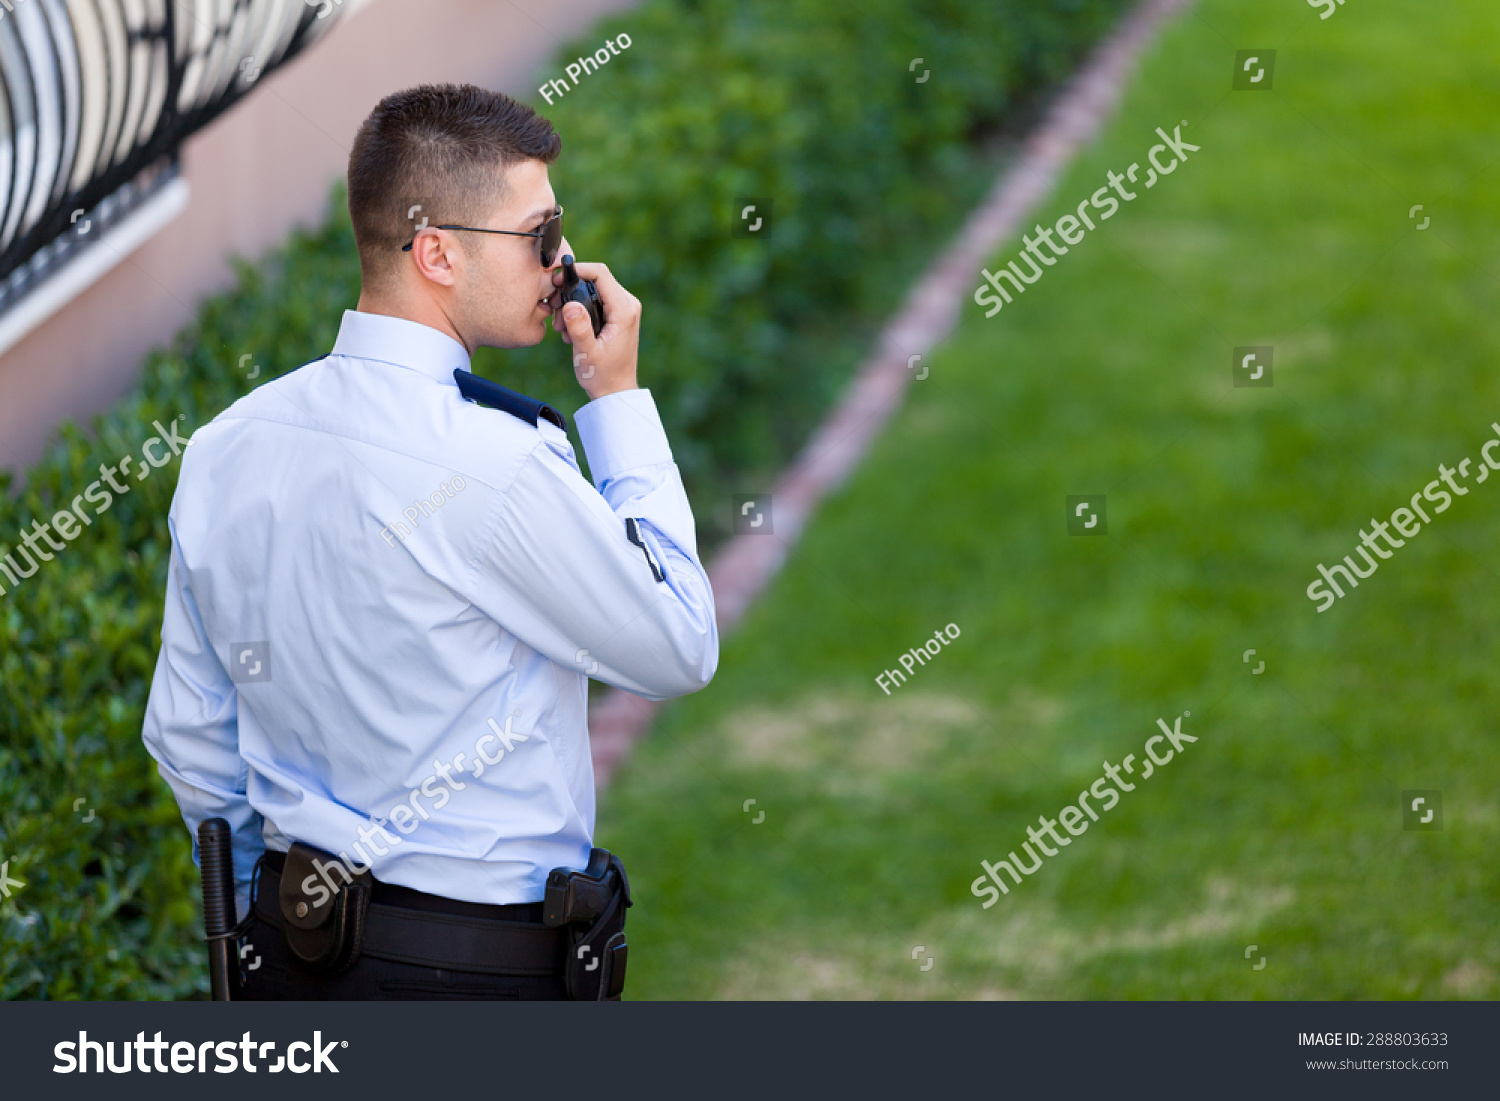 working as security guard